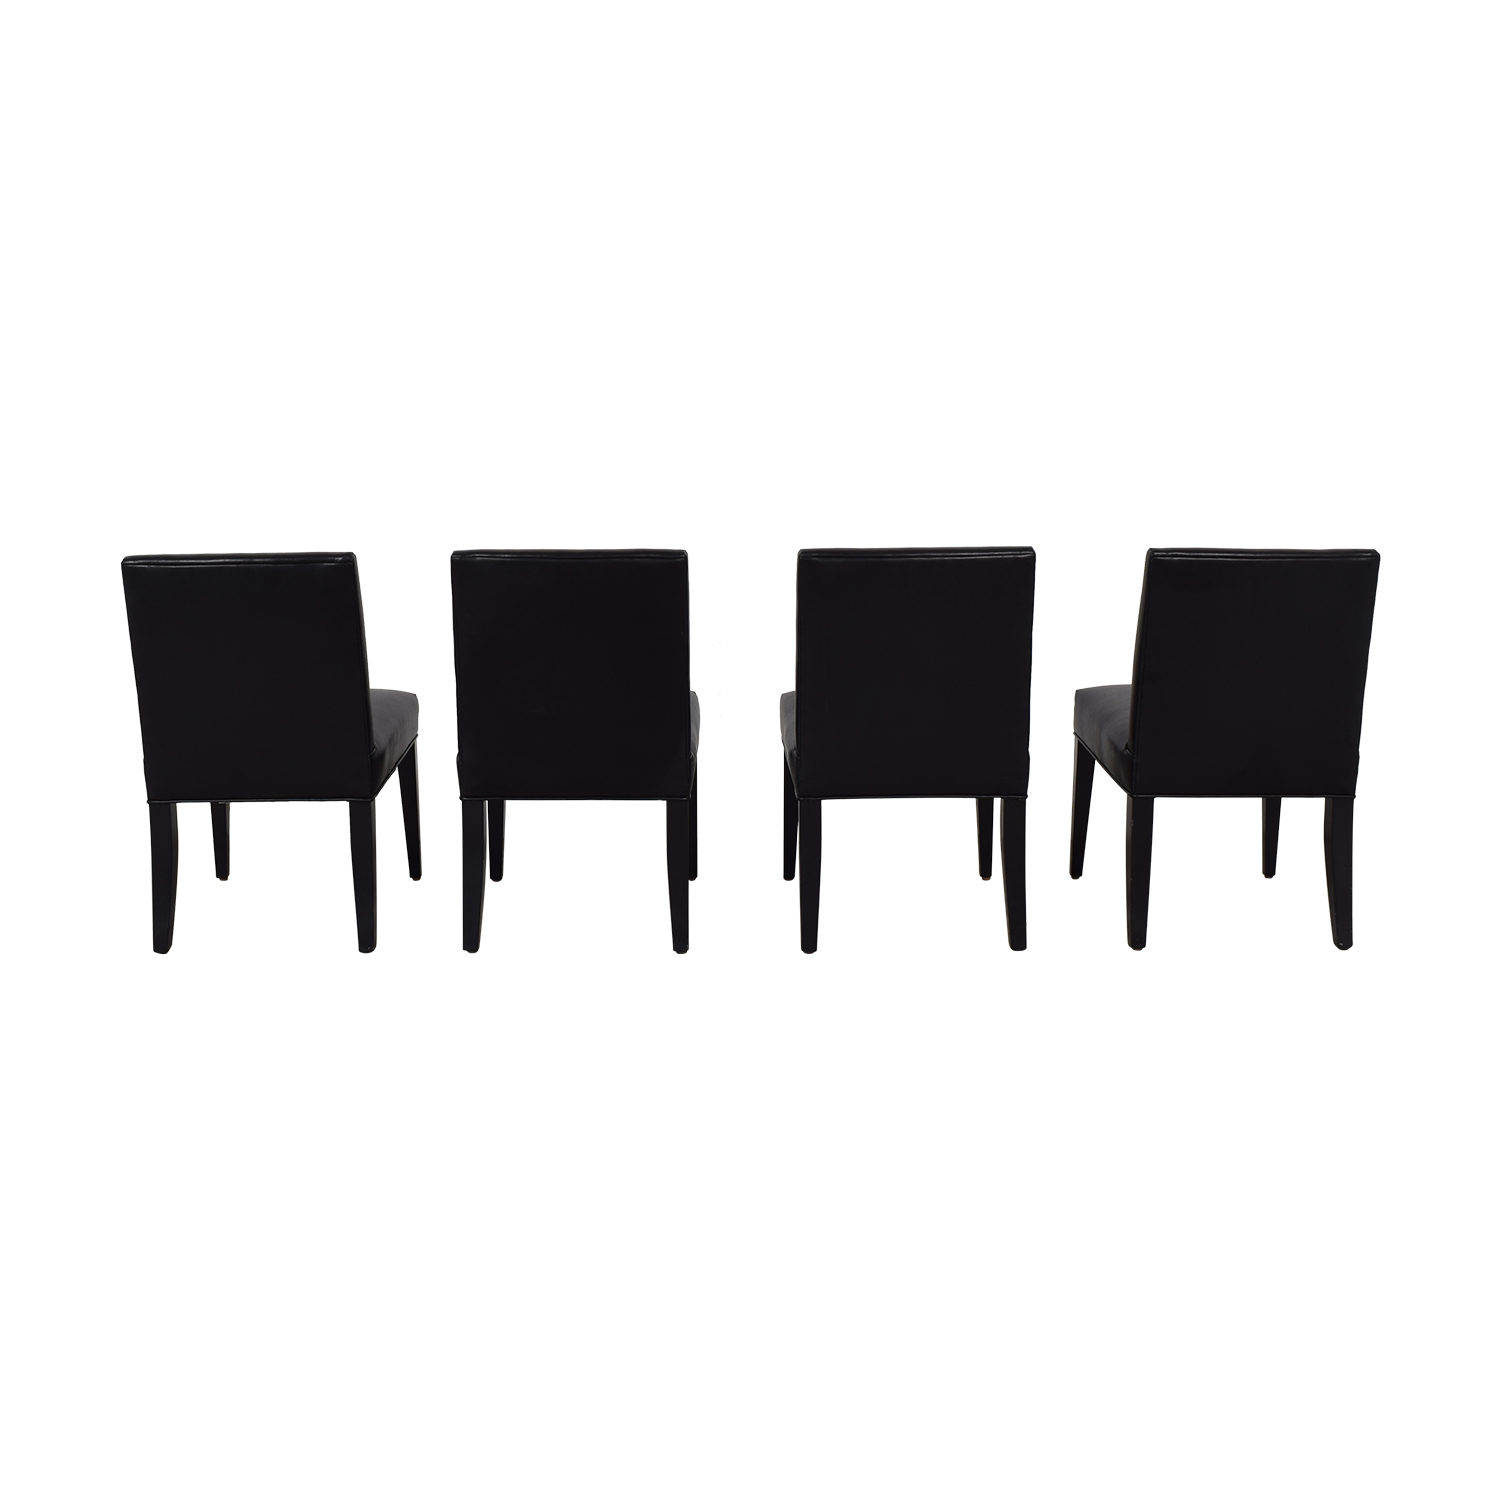 Lazar Lazar Brown Leather Dining Chairs Chairs